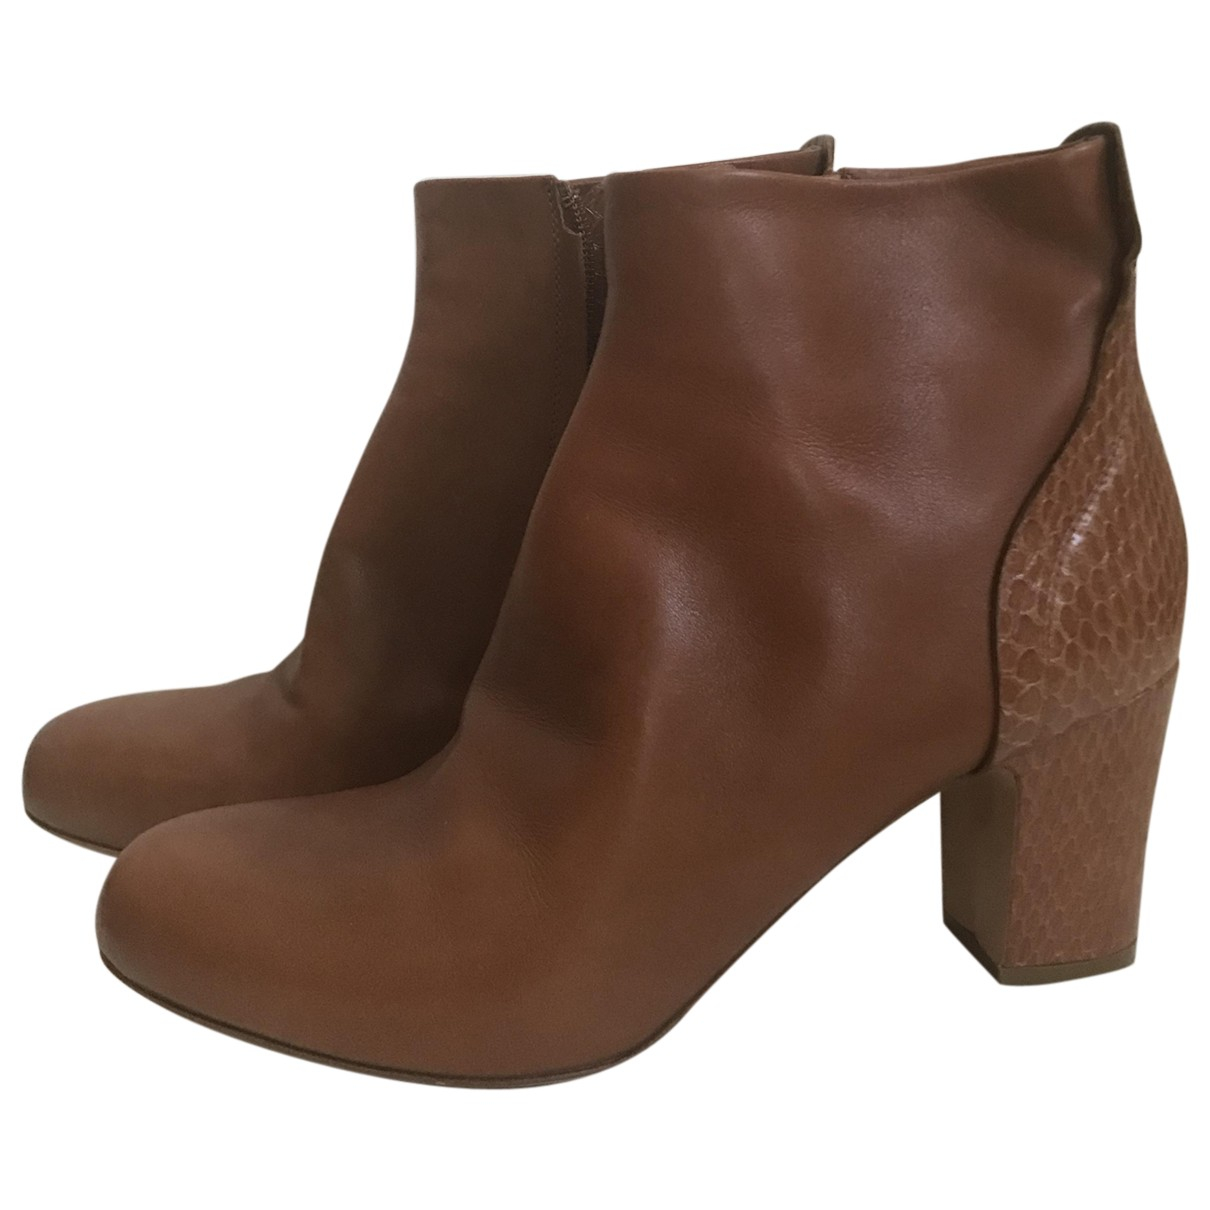 Maison Martin Margiela \N Brown Leather Ankle boots for Women 40 IT